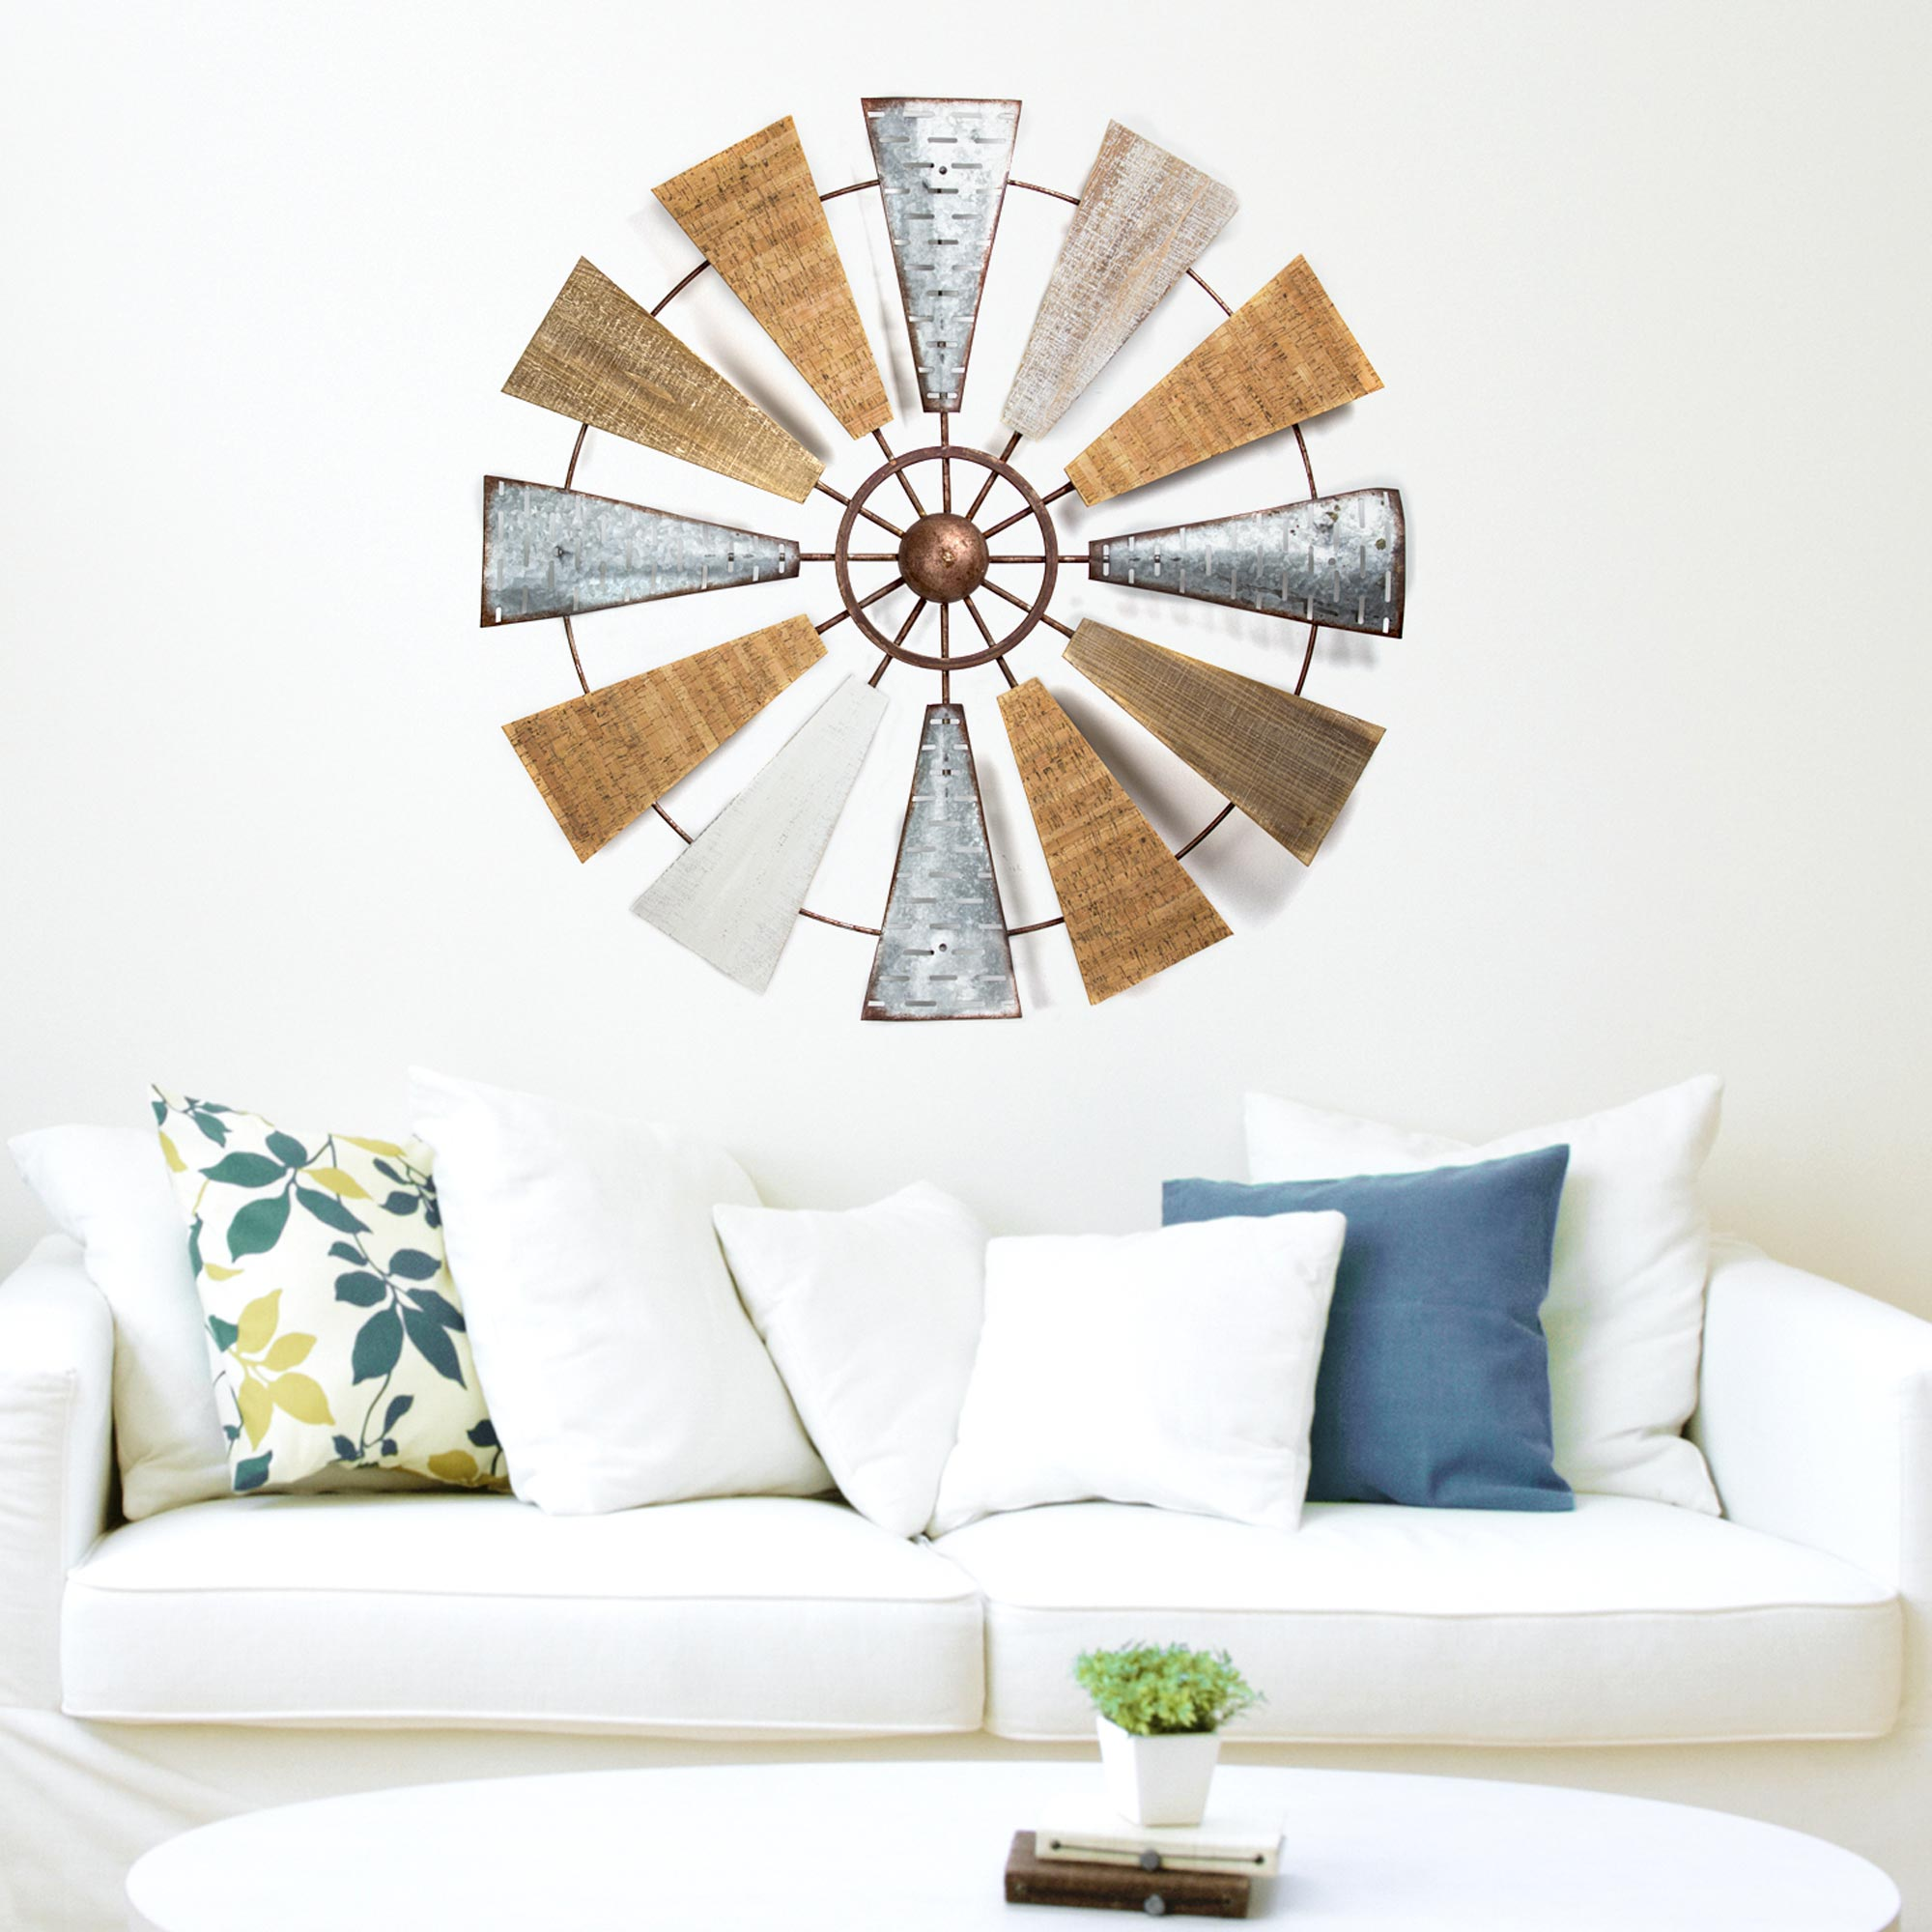 Windmill Wall Decor Choice Image wall painting designs ideas